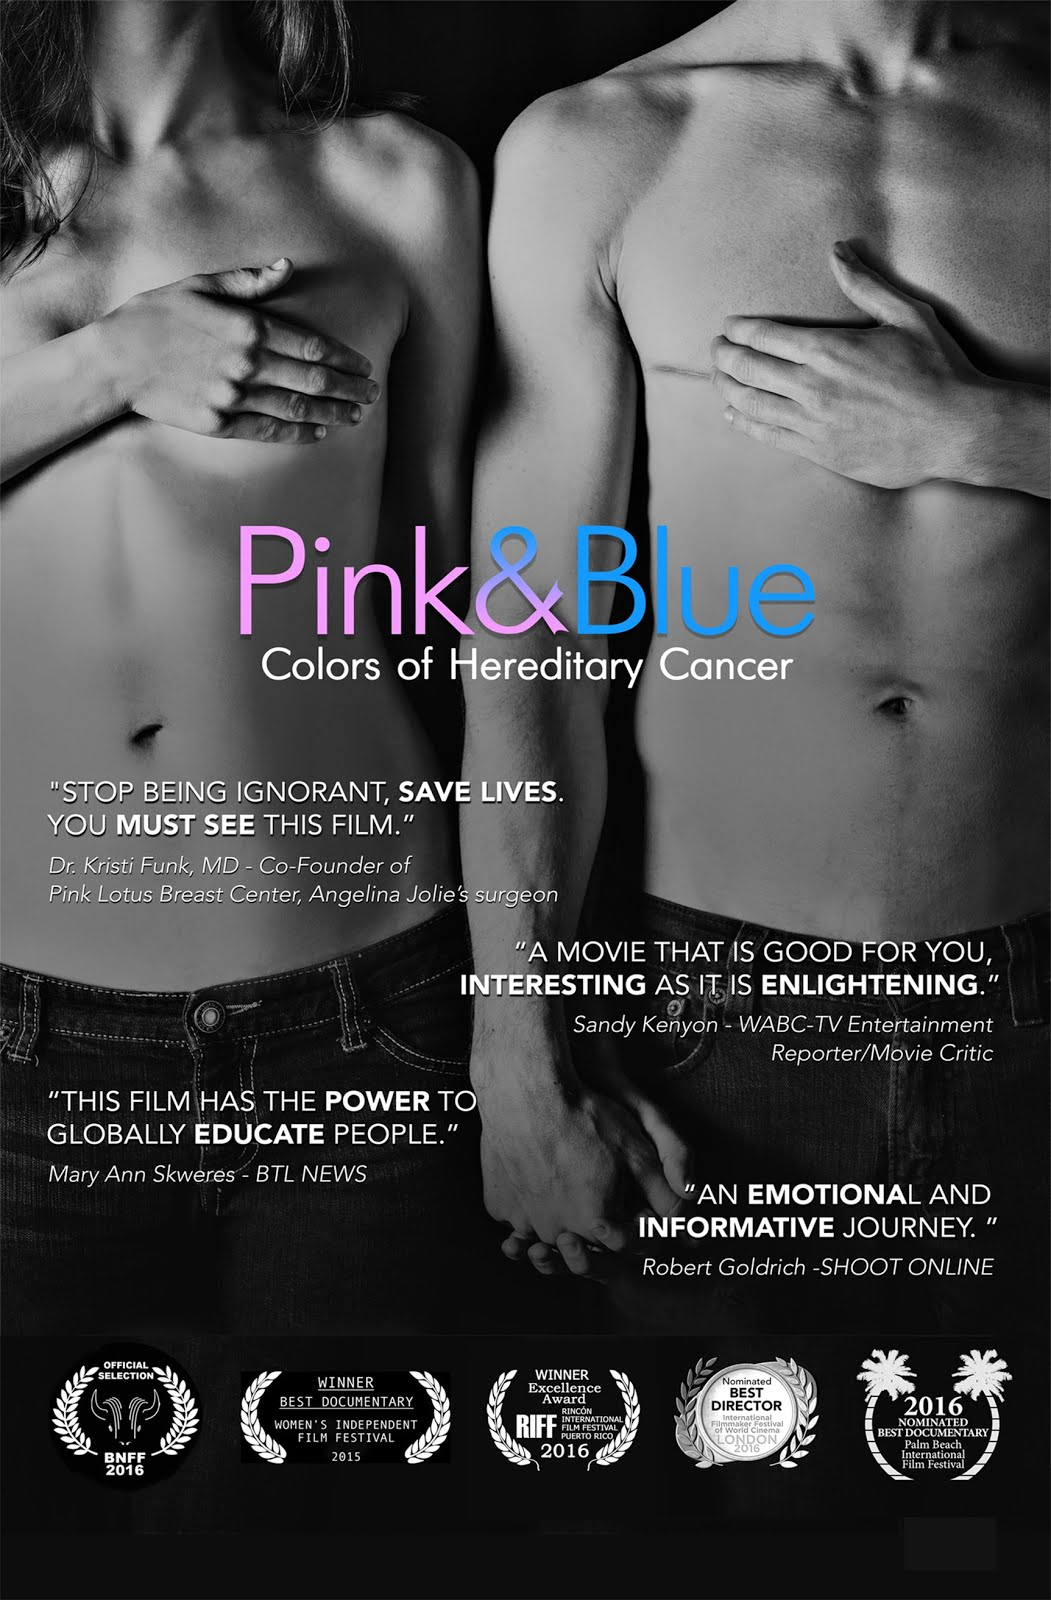 Watch Pink & Blue: Colors of Hereditary Cancer on iTunes!